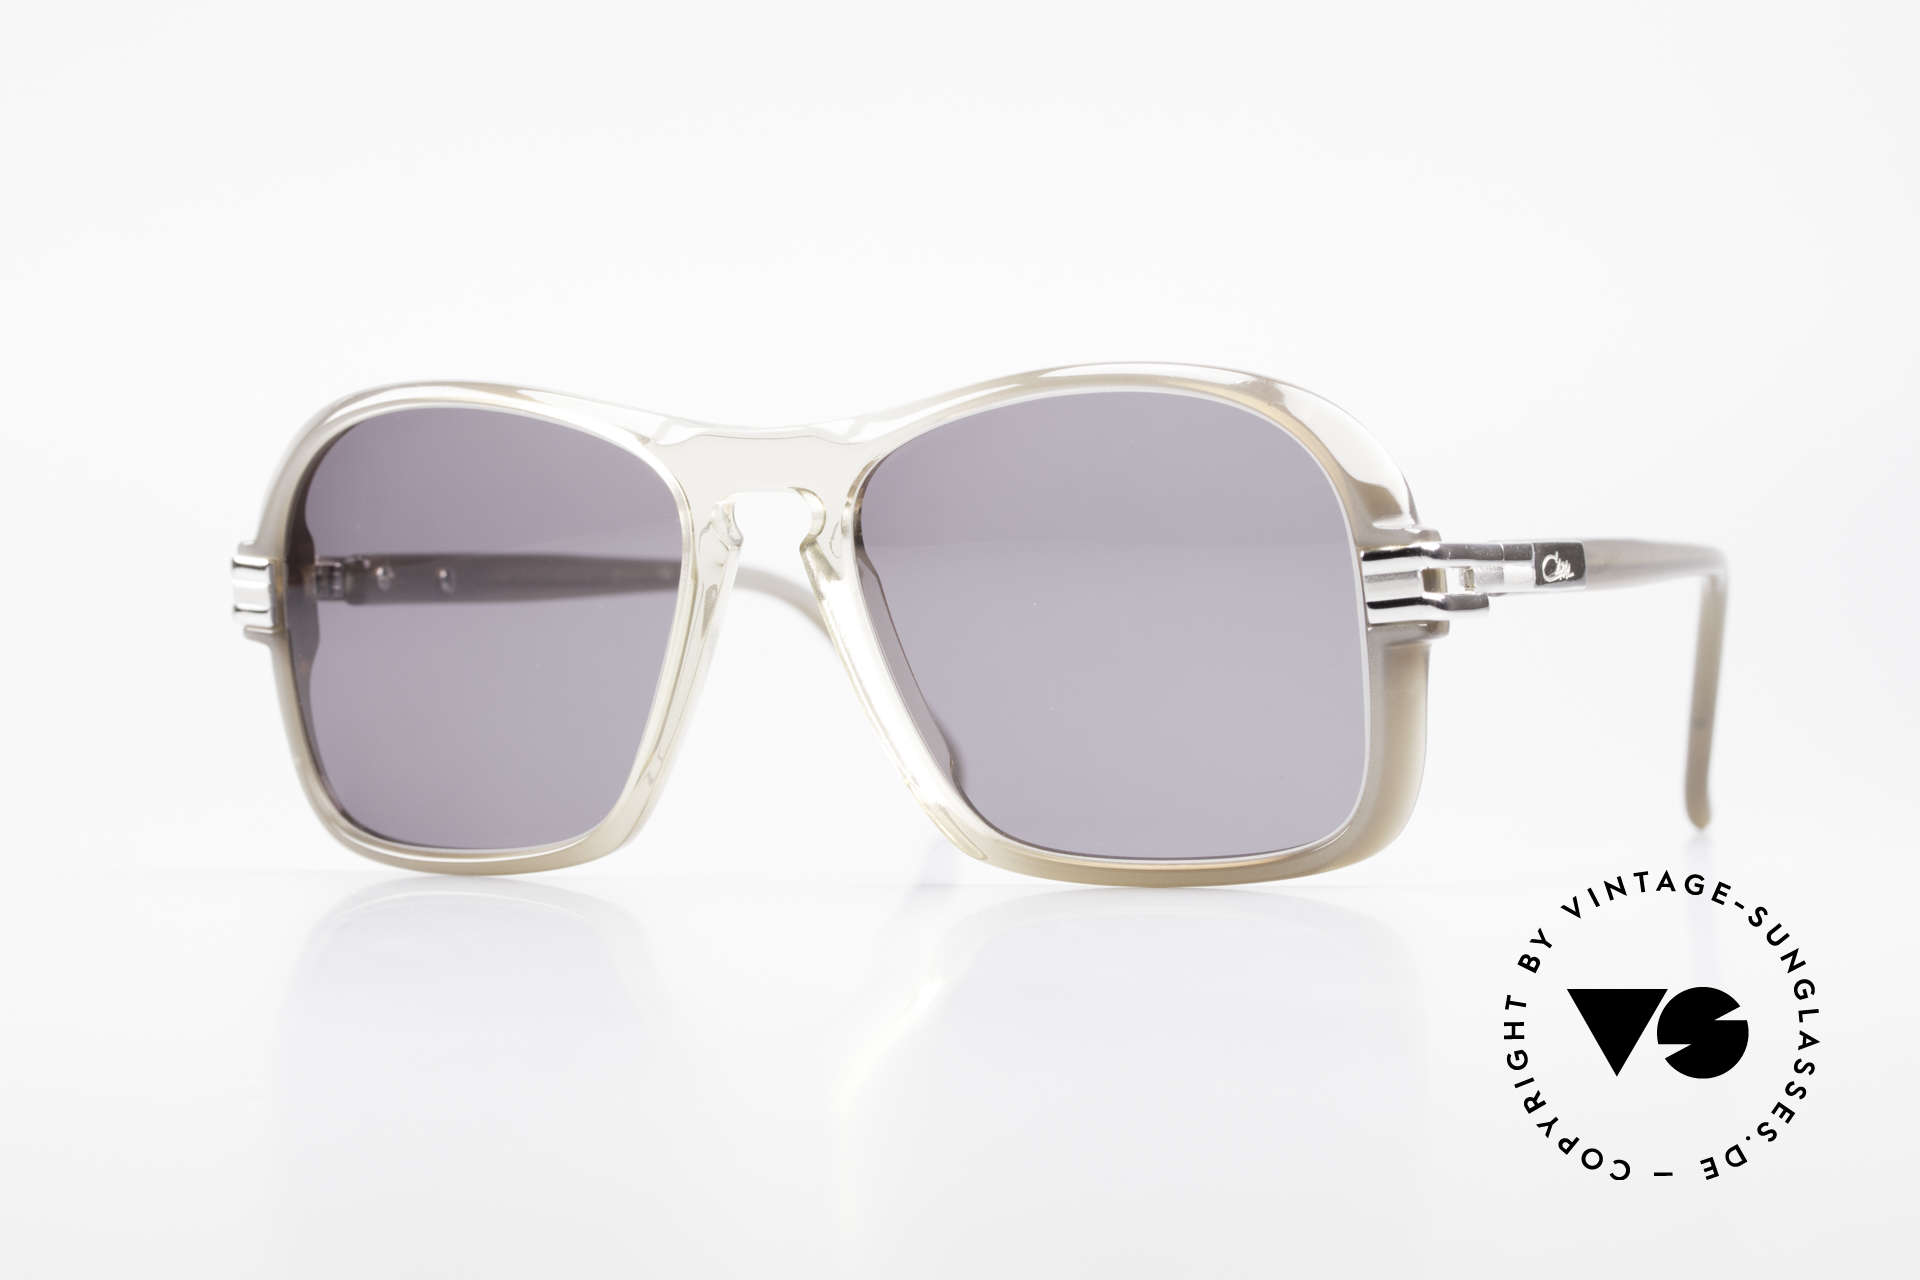 Cazal 606 70's Frame First Cazal Series, ultra rare vintage Cazal sunglasses from the late 1970's, Made for Men